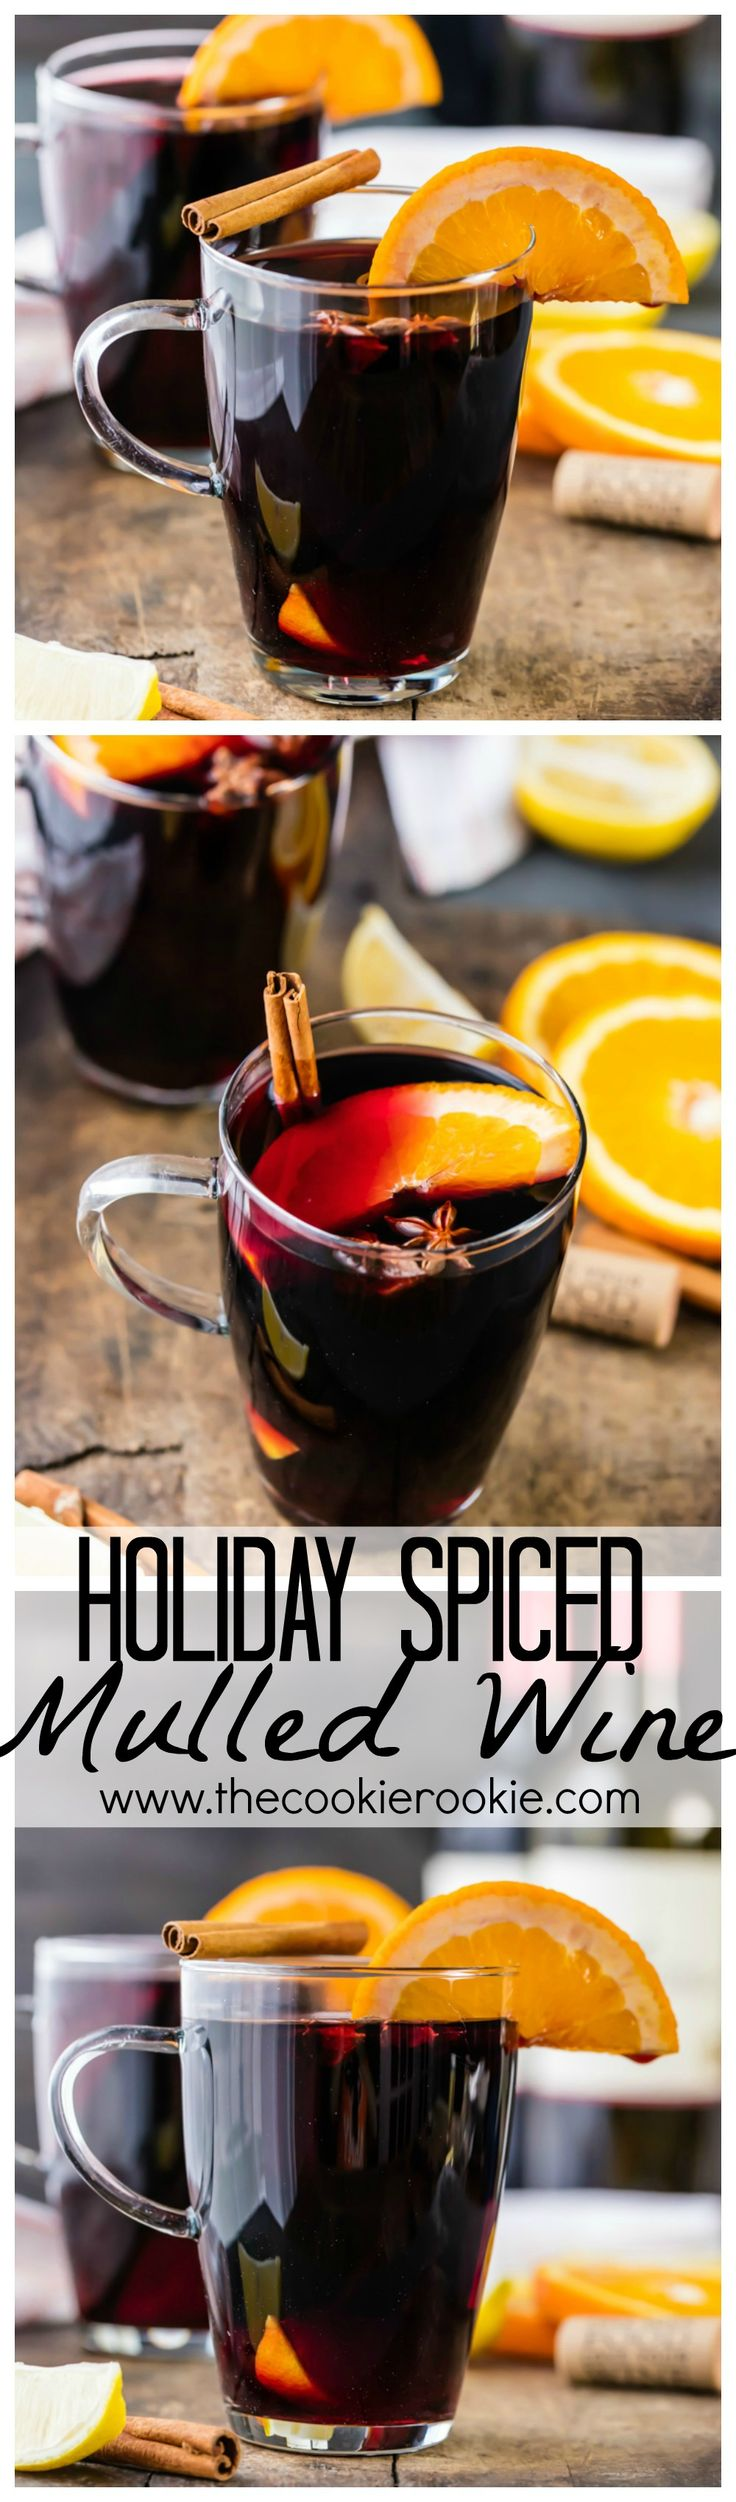 Holiday Spiced Mulled Wine...HOLIDAY SANGRIA! Made in under 30 minutes! An instant family favorite! Use your favorite red wine and make your house smell AMAZING!